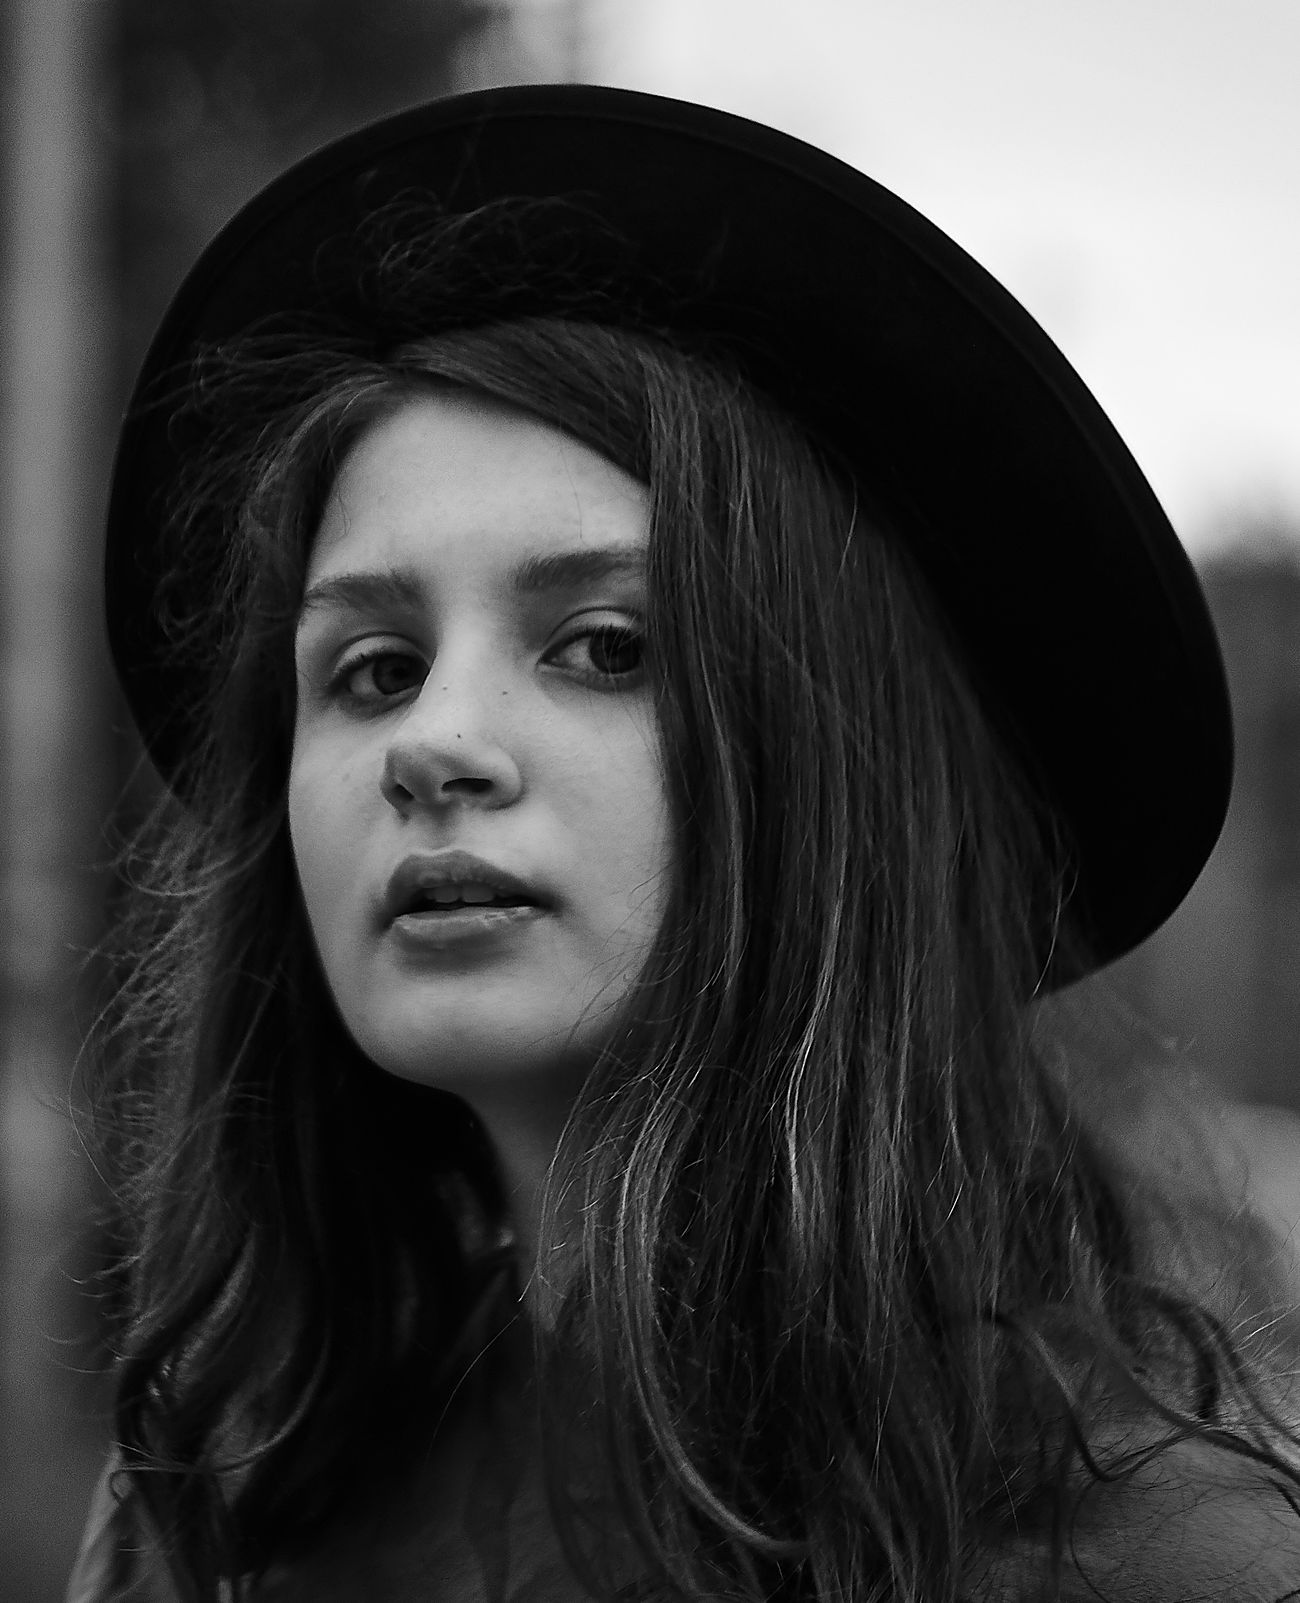 Russia Black And White Portrait Blackandwhite Black And White Photography Blackandwhite Photography Black & White Black And White Black&white Real People Long Hair Serious Young Women Young Adult One Person Beautiful Woman Day Close-up Indoors  Portrait Photography